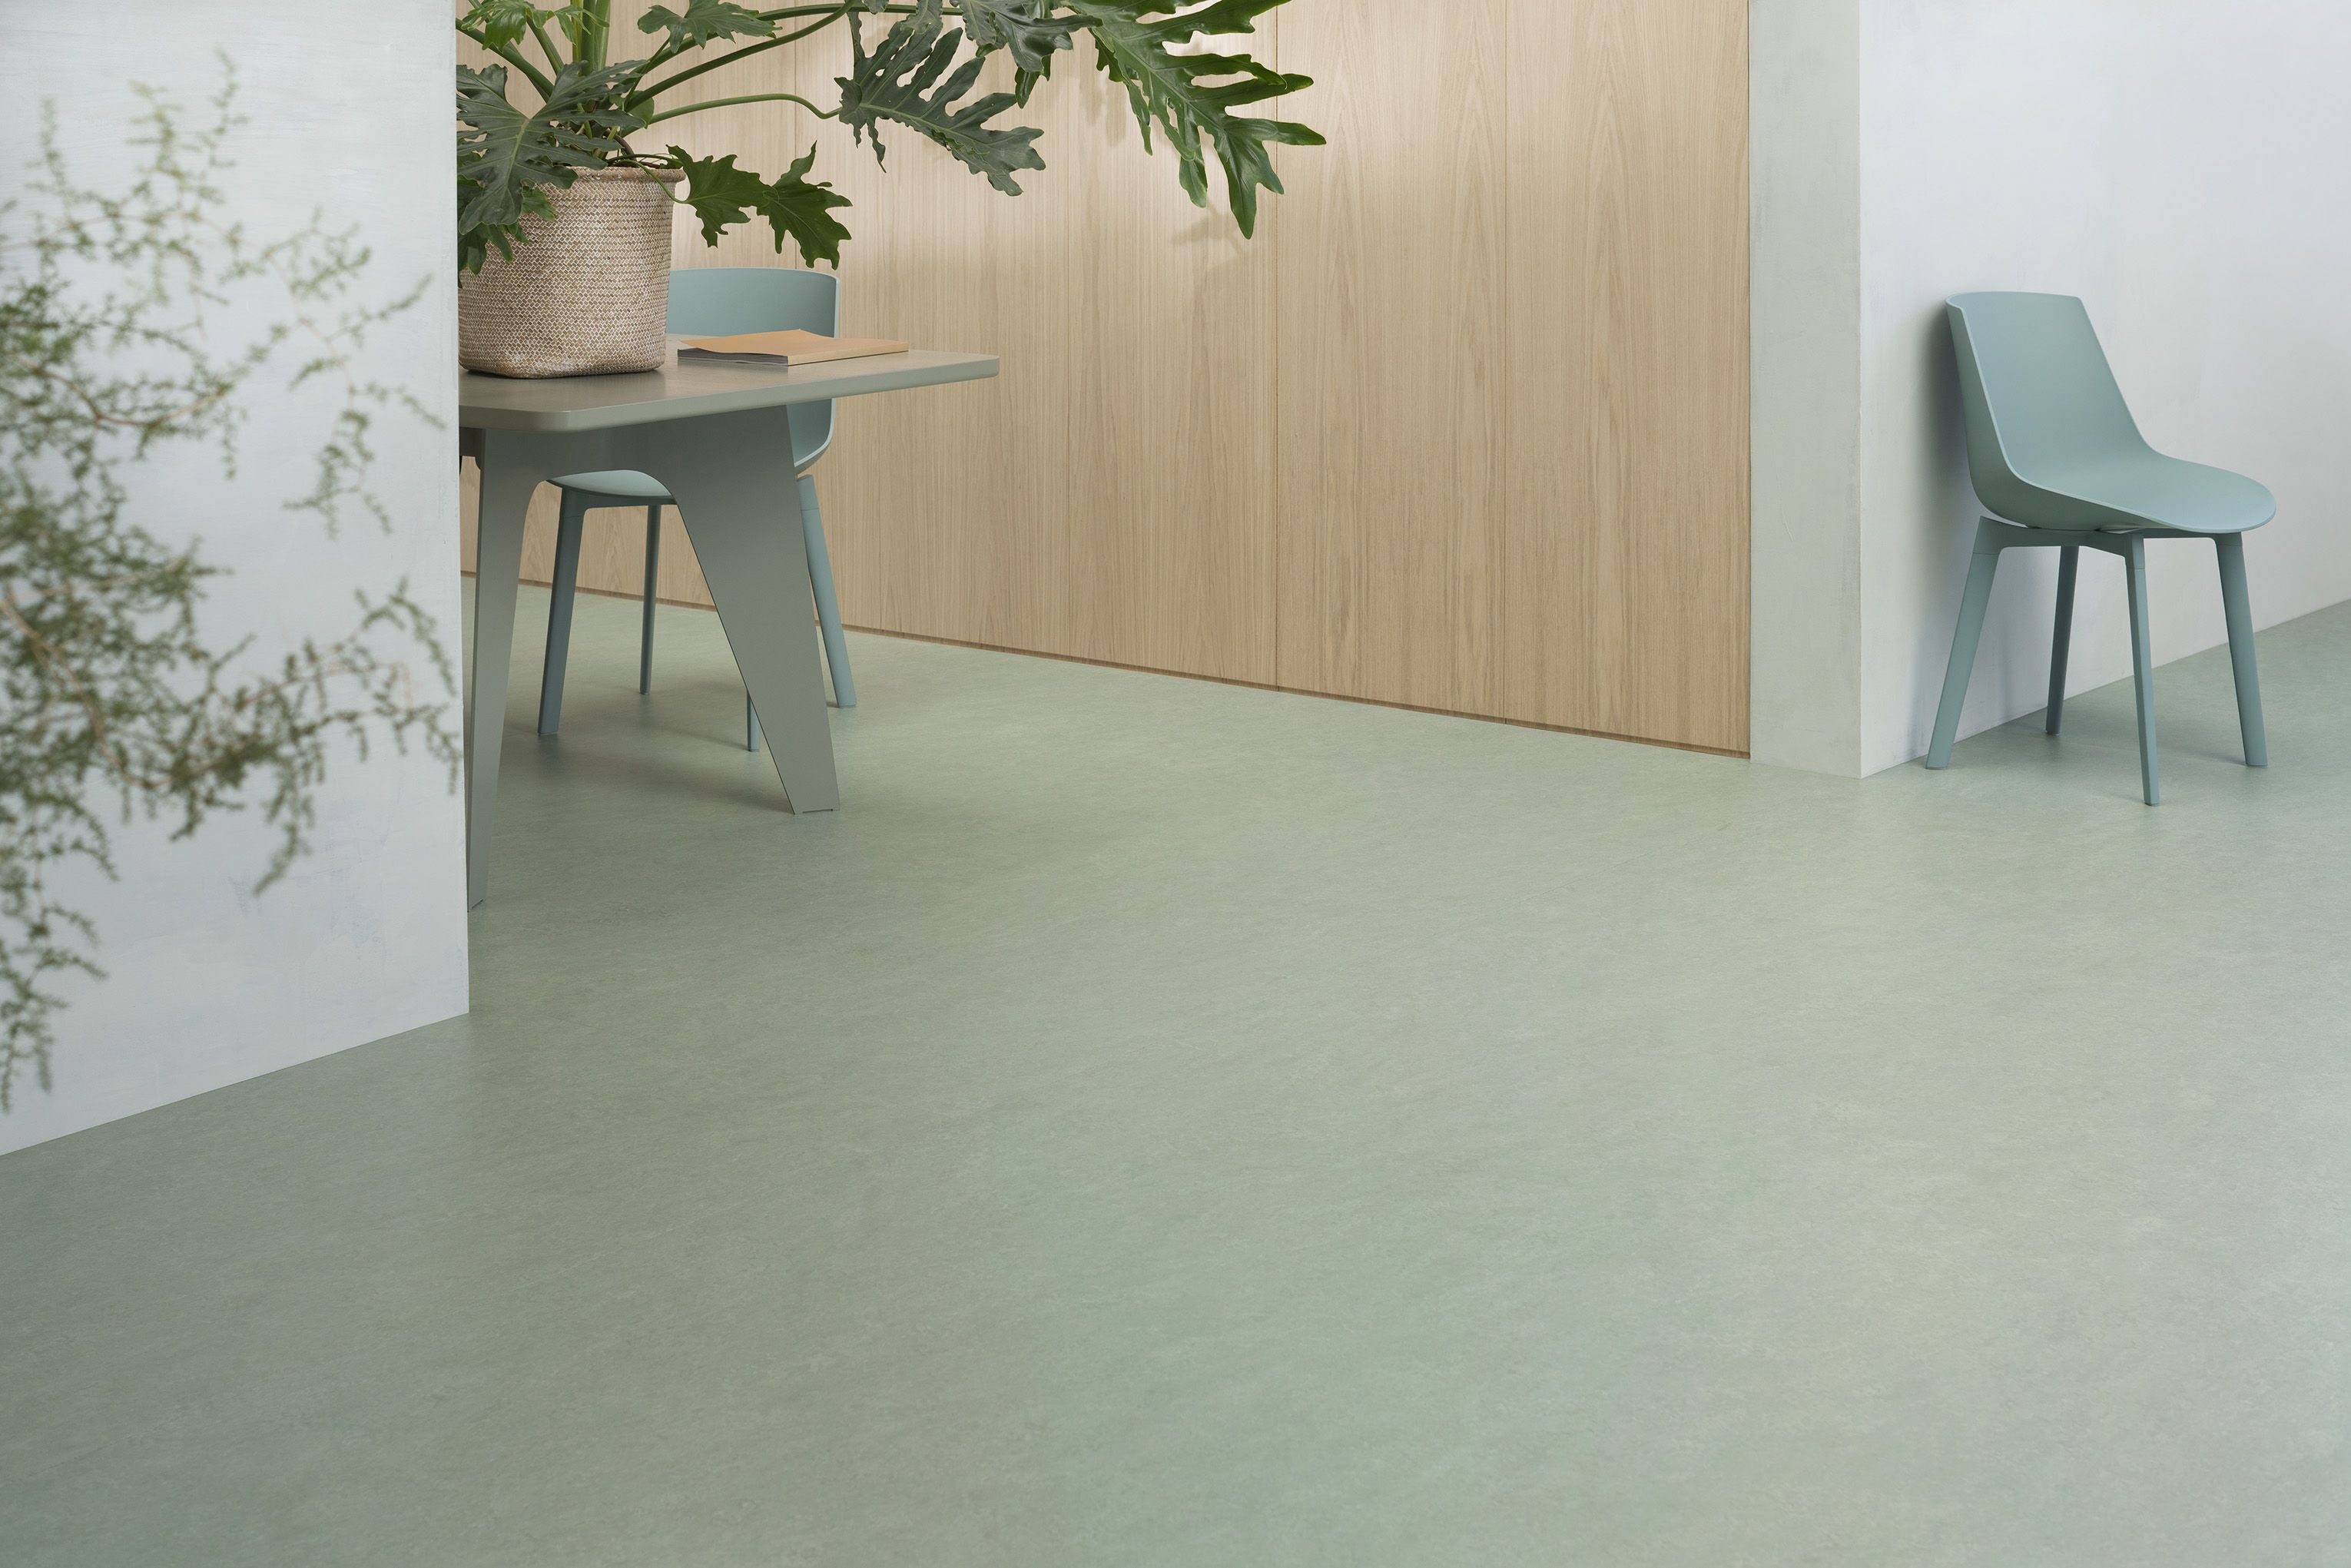 Natural Linoleum Flooring Commercial Interior Design Linoleum Flooring Marmoleum Marmoleum Floors